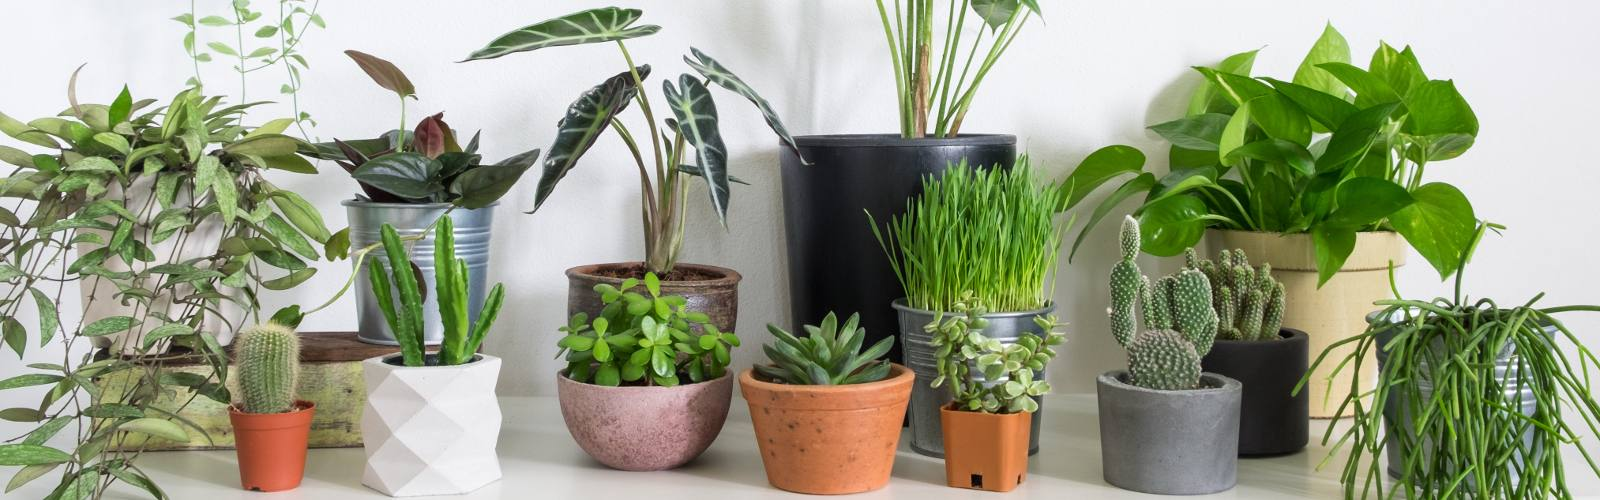 Five reasons to get more houseplants (besides cleaner air!)